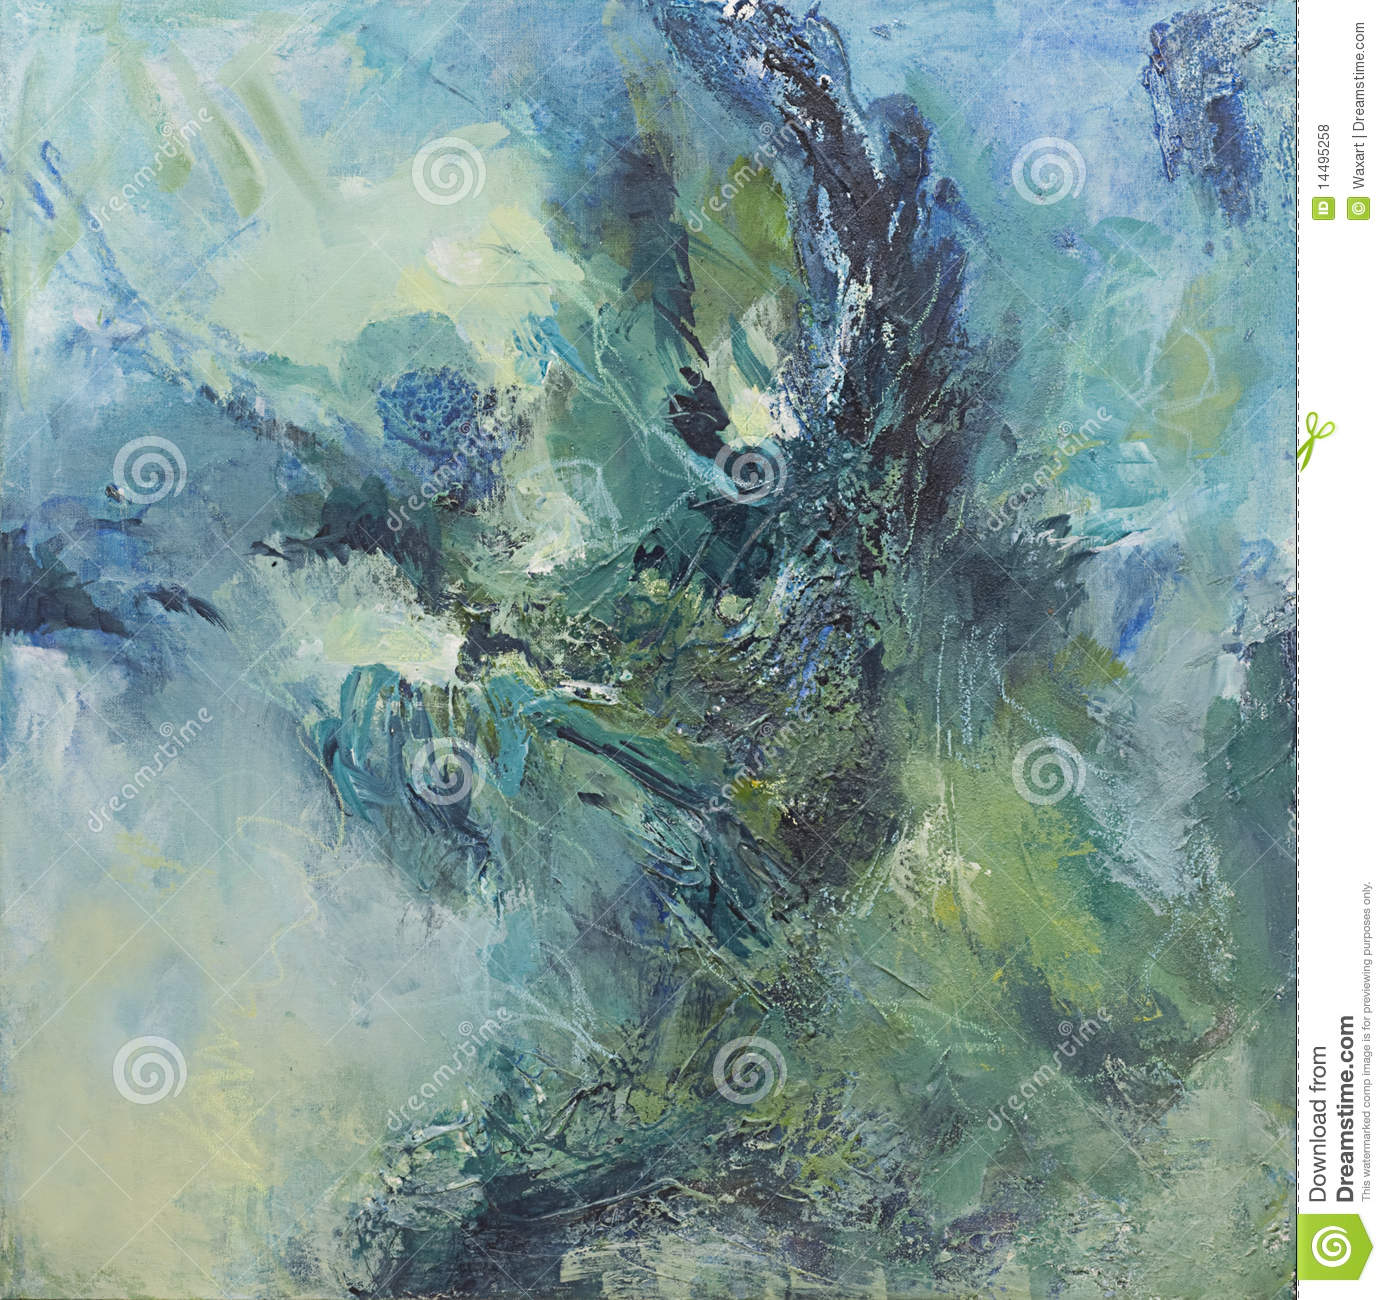 Green And Blue Abstract Expressionist Painting Royalty